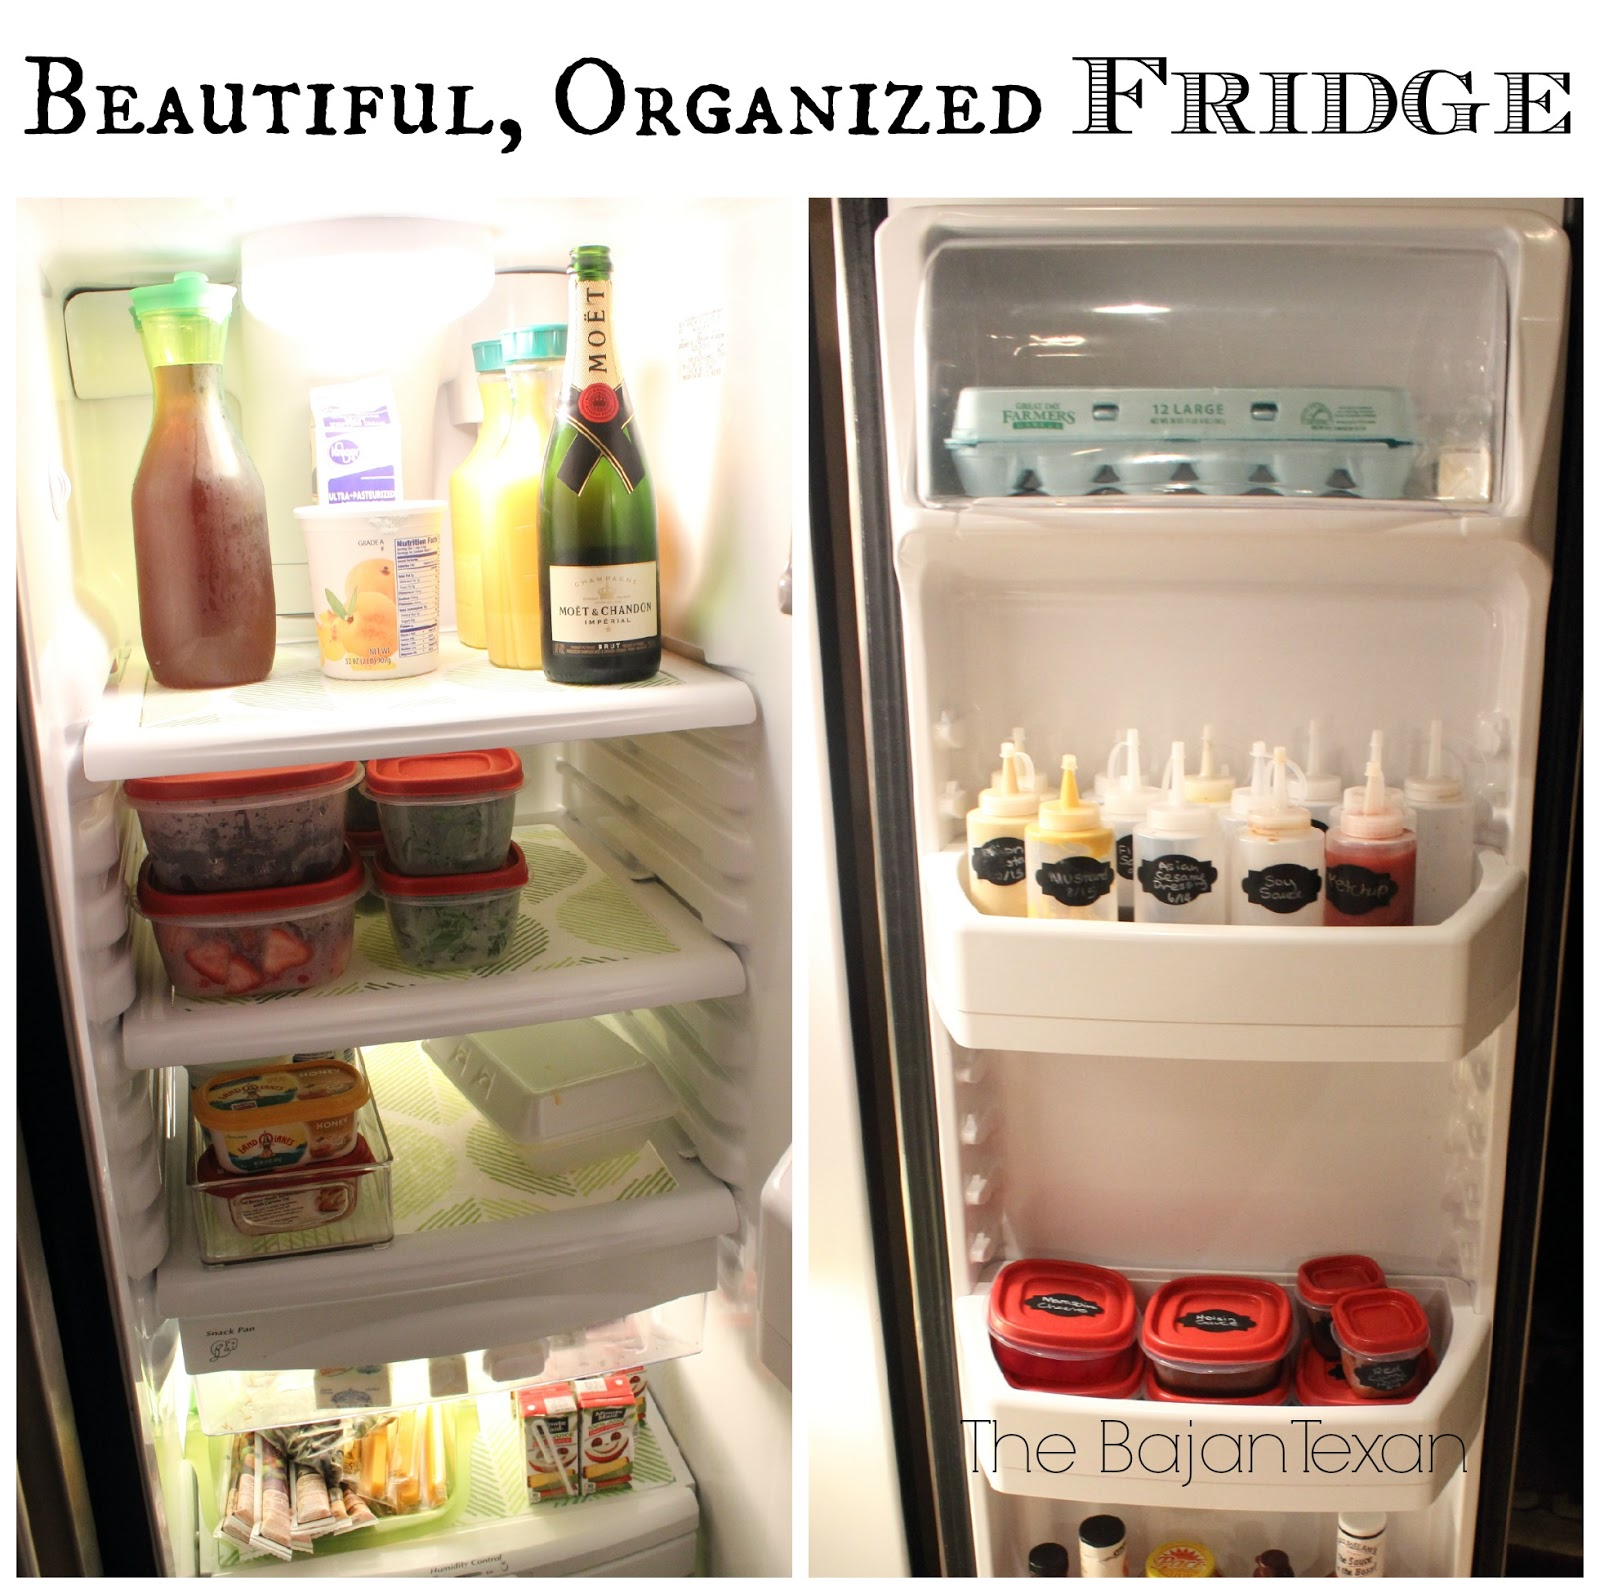 Fridge Organization Video – The Bajan Texan